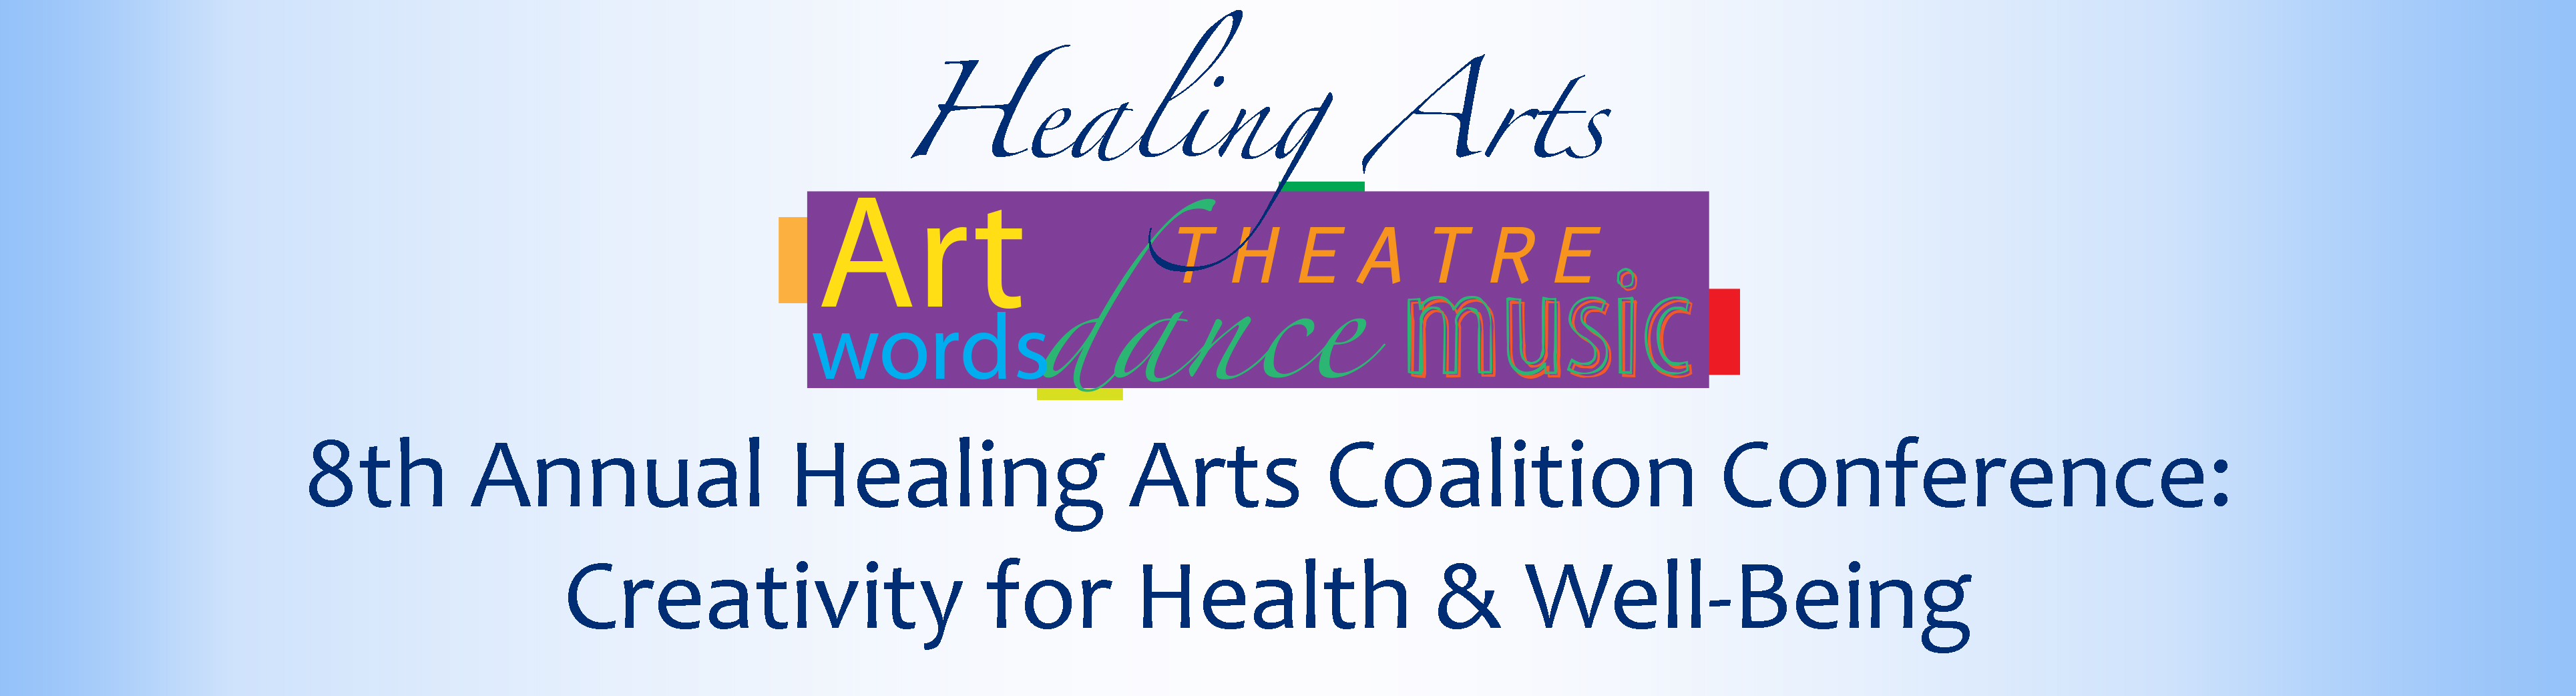 8th Annual Healing Arts Coalition Conference:<br>Creativity for Health & Well-Being